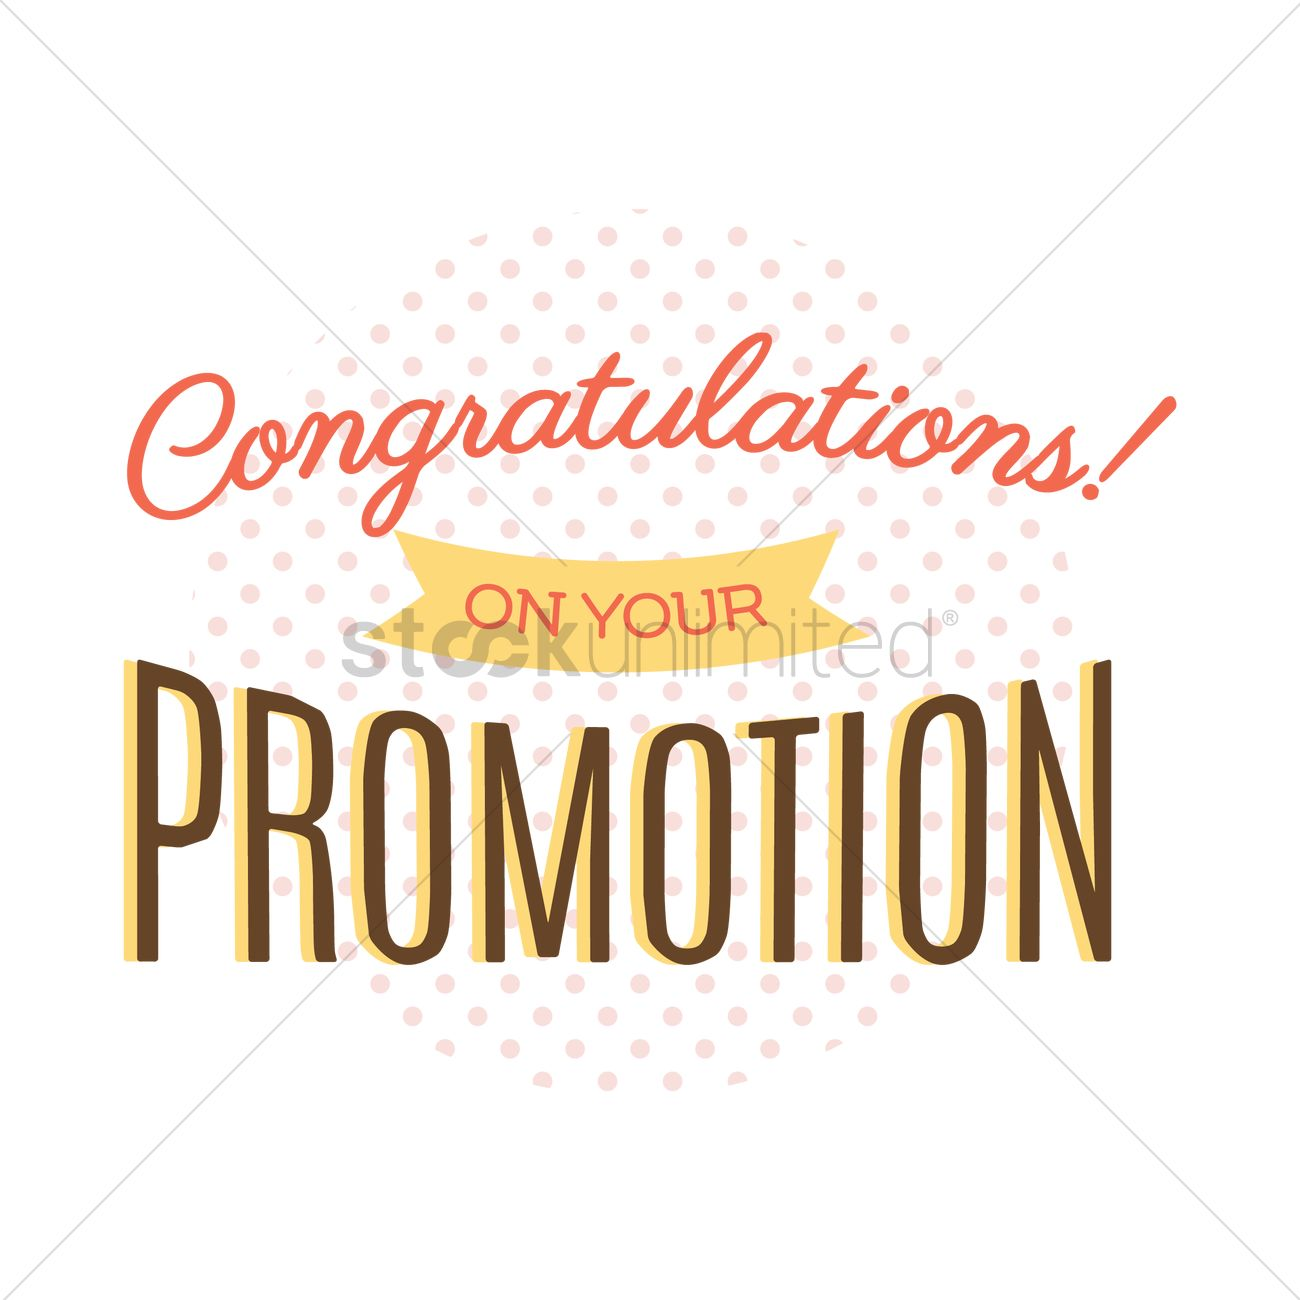 Congratulations Quotes New Job Position: Congratulatory Message On Job Promotion Vector Image